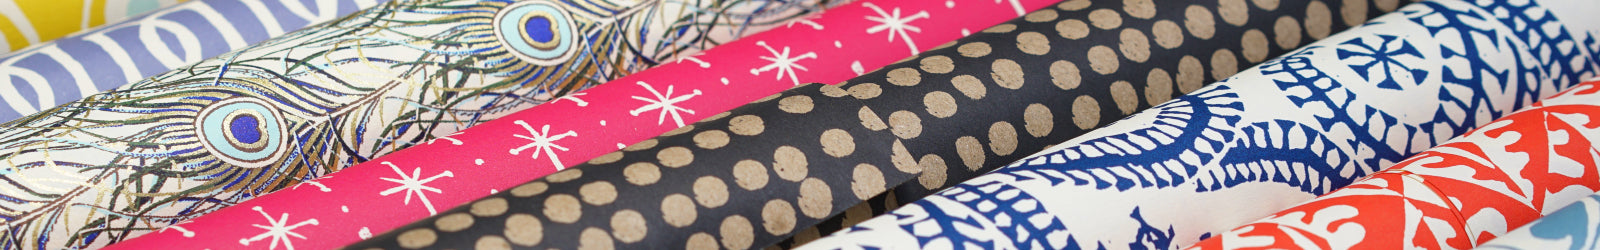 Decorative papers in a row